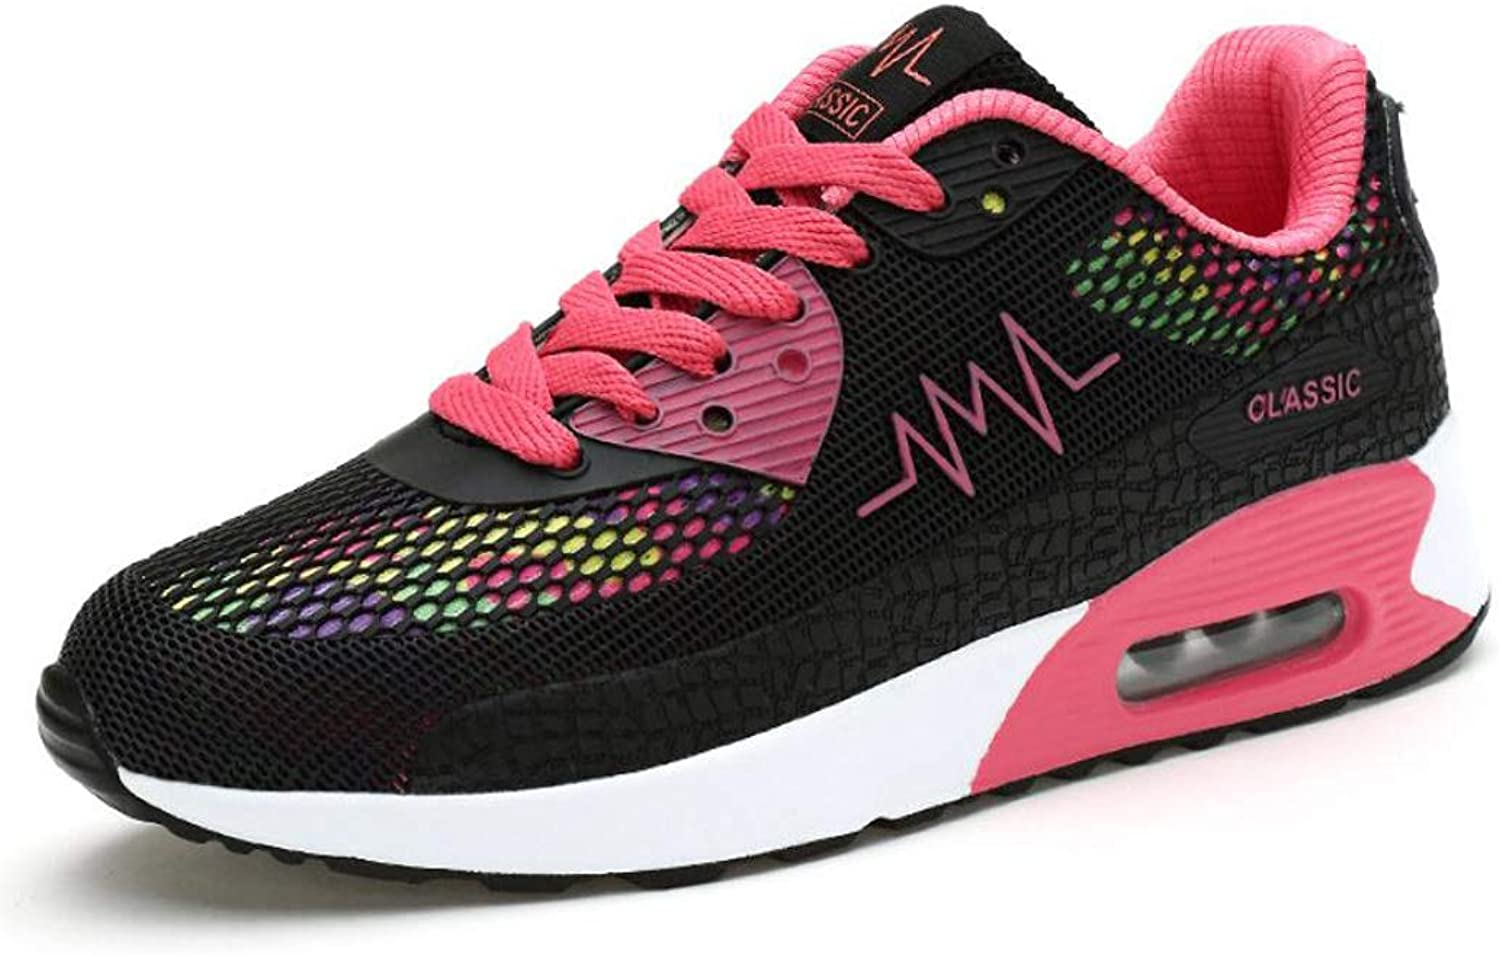 Zxcvb Women's Fitness Air Cushion Workout Trail Running shoes Fashion Sport Gym Jogging Walking Sneakers Black Yellow bluee